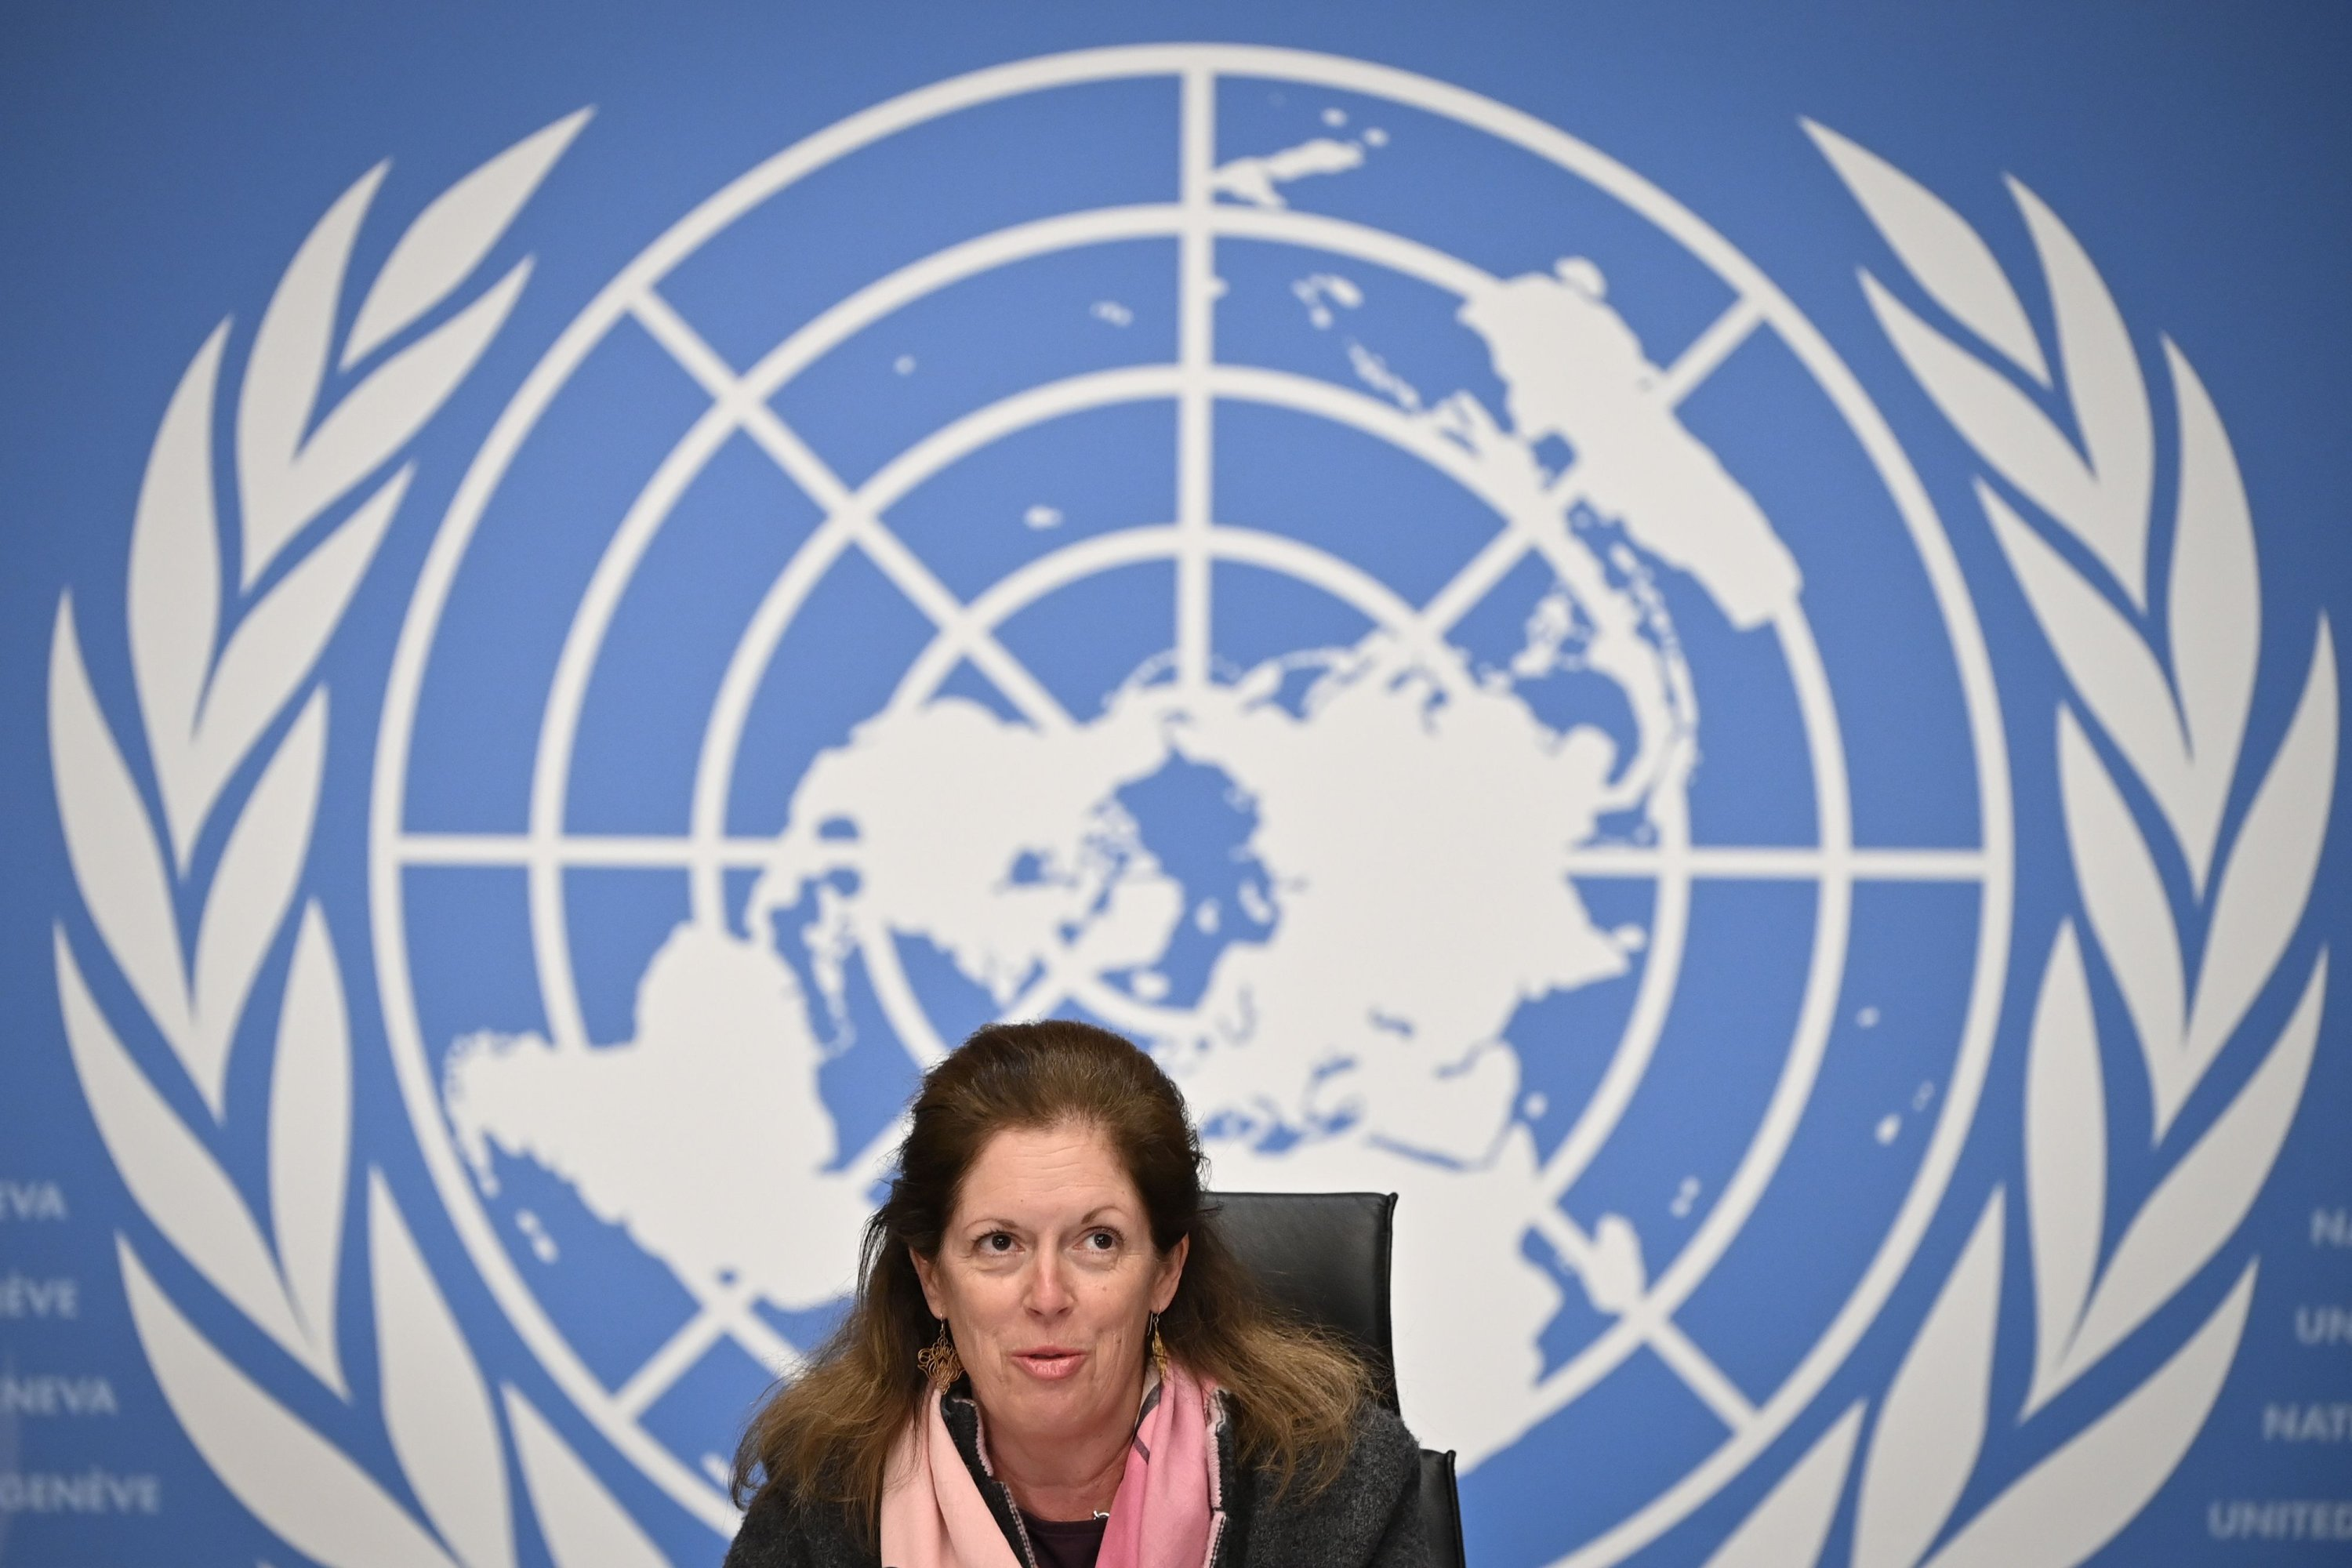 Deputy Special Representative of the U.N. Secretary-General for Political Affairs in Libya Stephanie Williams speaks during a press conference in Geneva, Switzerland, Feb. 5, 2021. (AFP Photo)